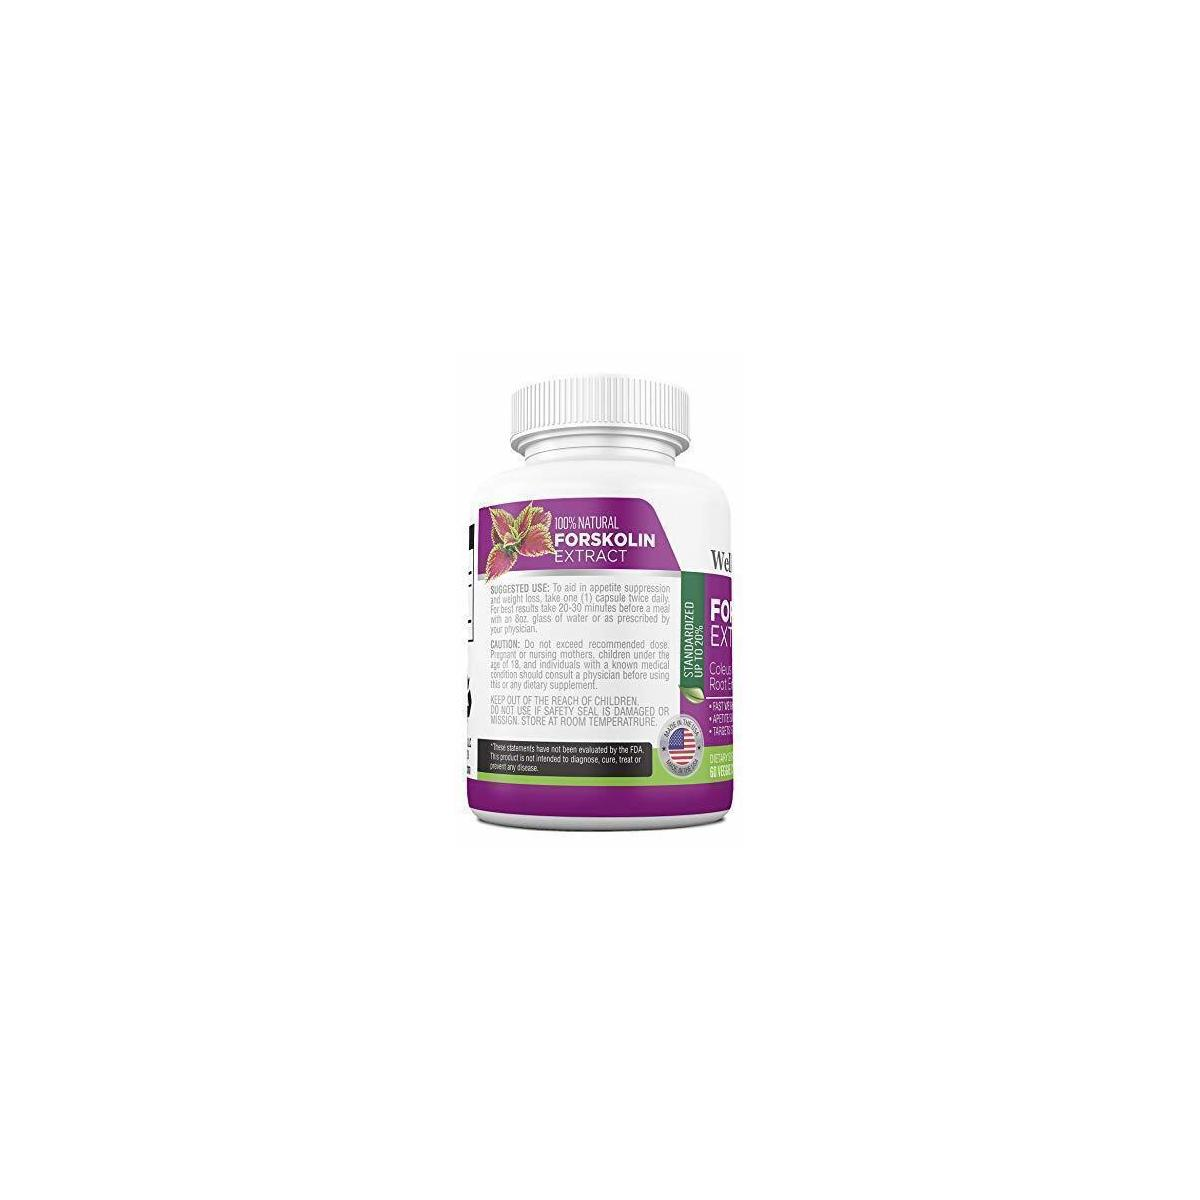 Forskolin 3000mg Max Strength - Fat Burner for Men and Women (3 Pack)